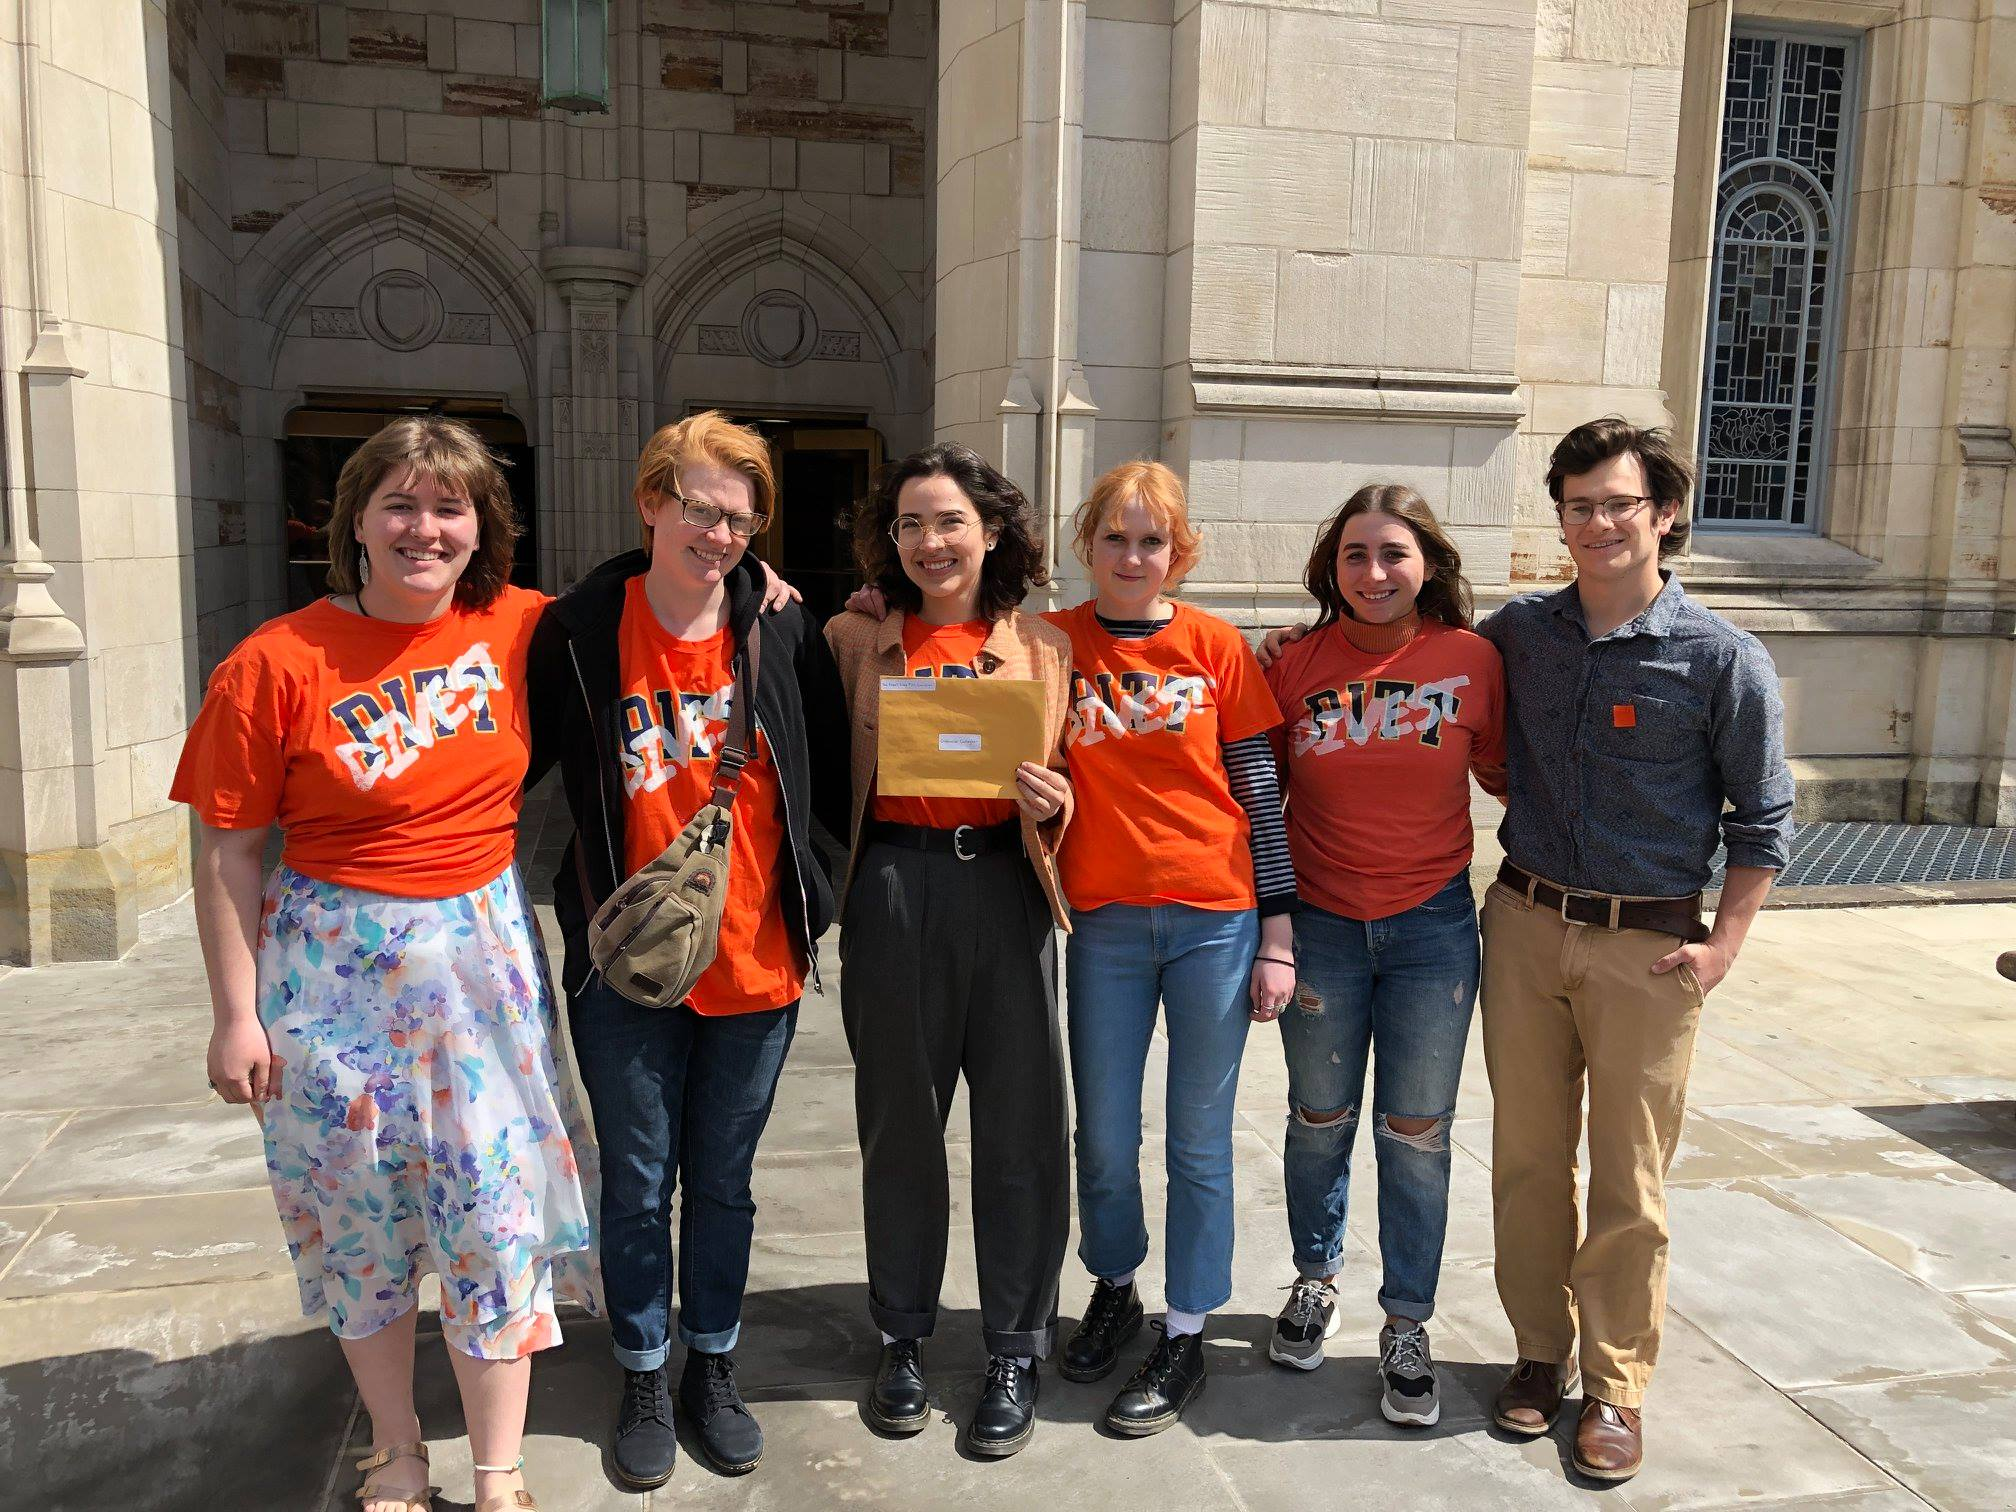 Fossil Free Pitt Letter to Chancellor, April 3, 2019